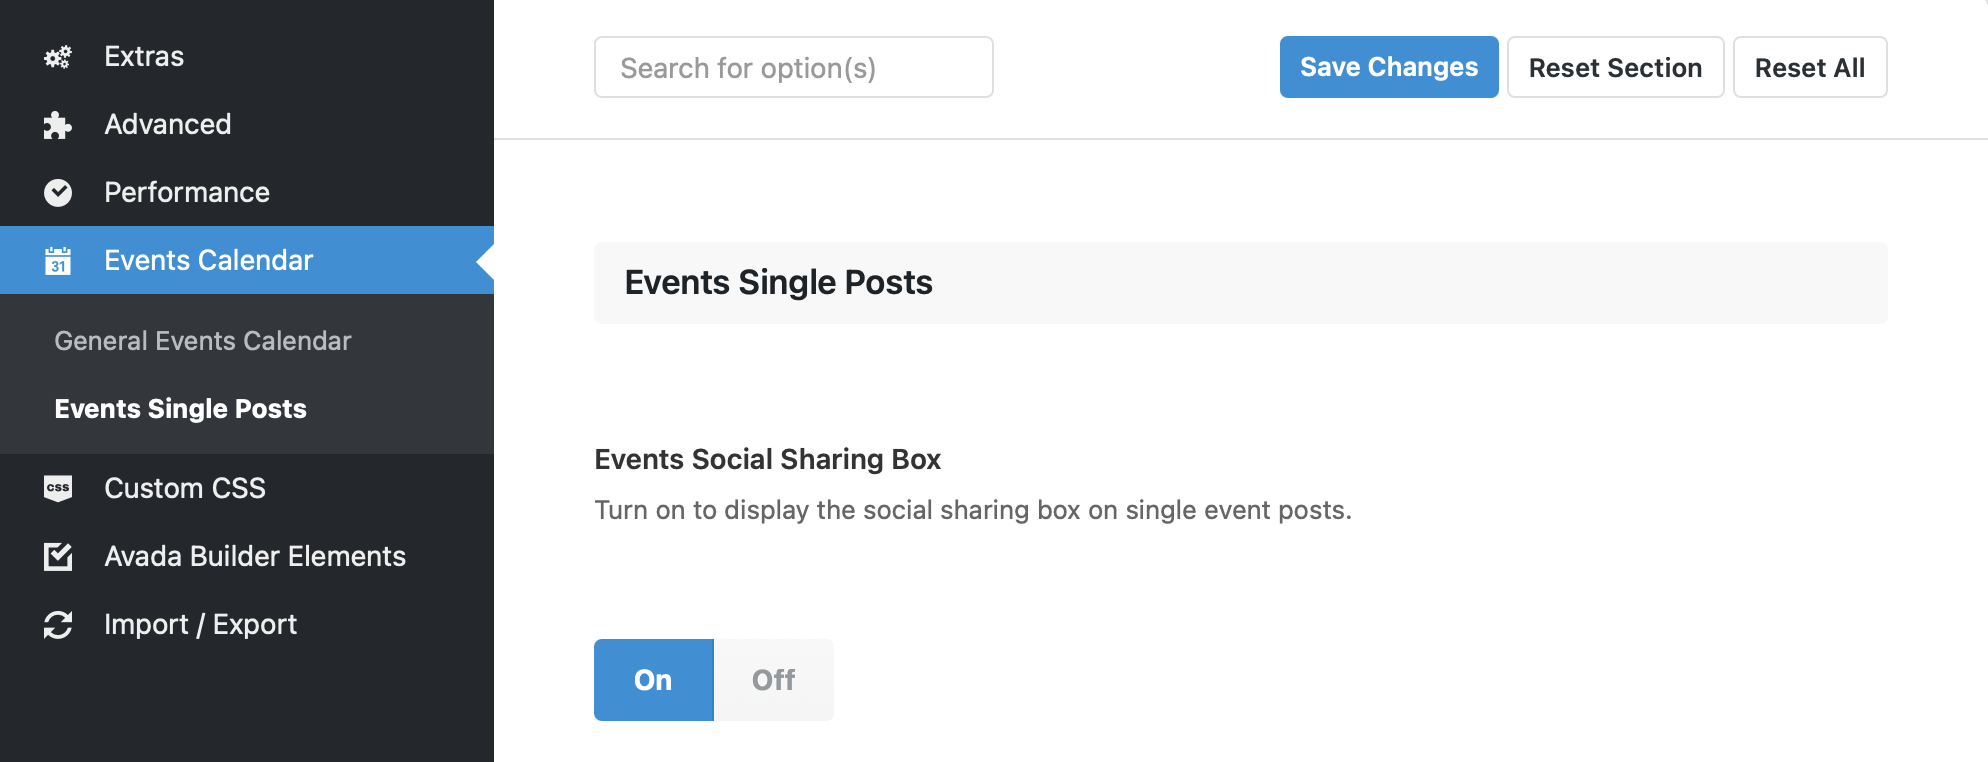 Showing the settings screen for event single posts. The menu for Avada's global settings is dark and located to the left and the Events Calendar item is highlighted in blue. The event post settings are located to the right of the menu again a white background, showing an option for social sharing.